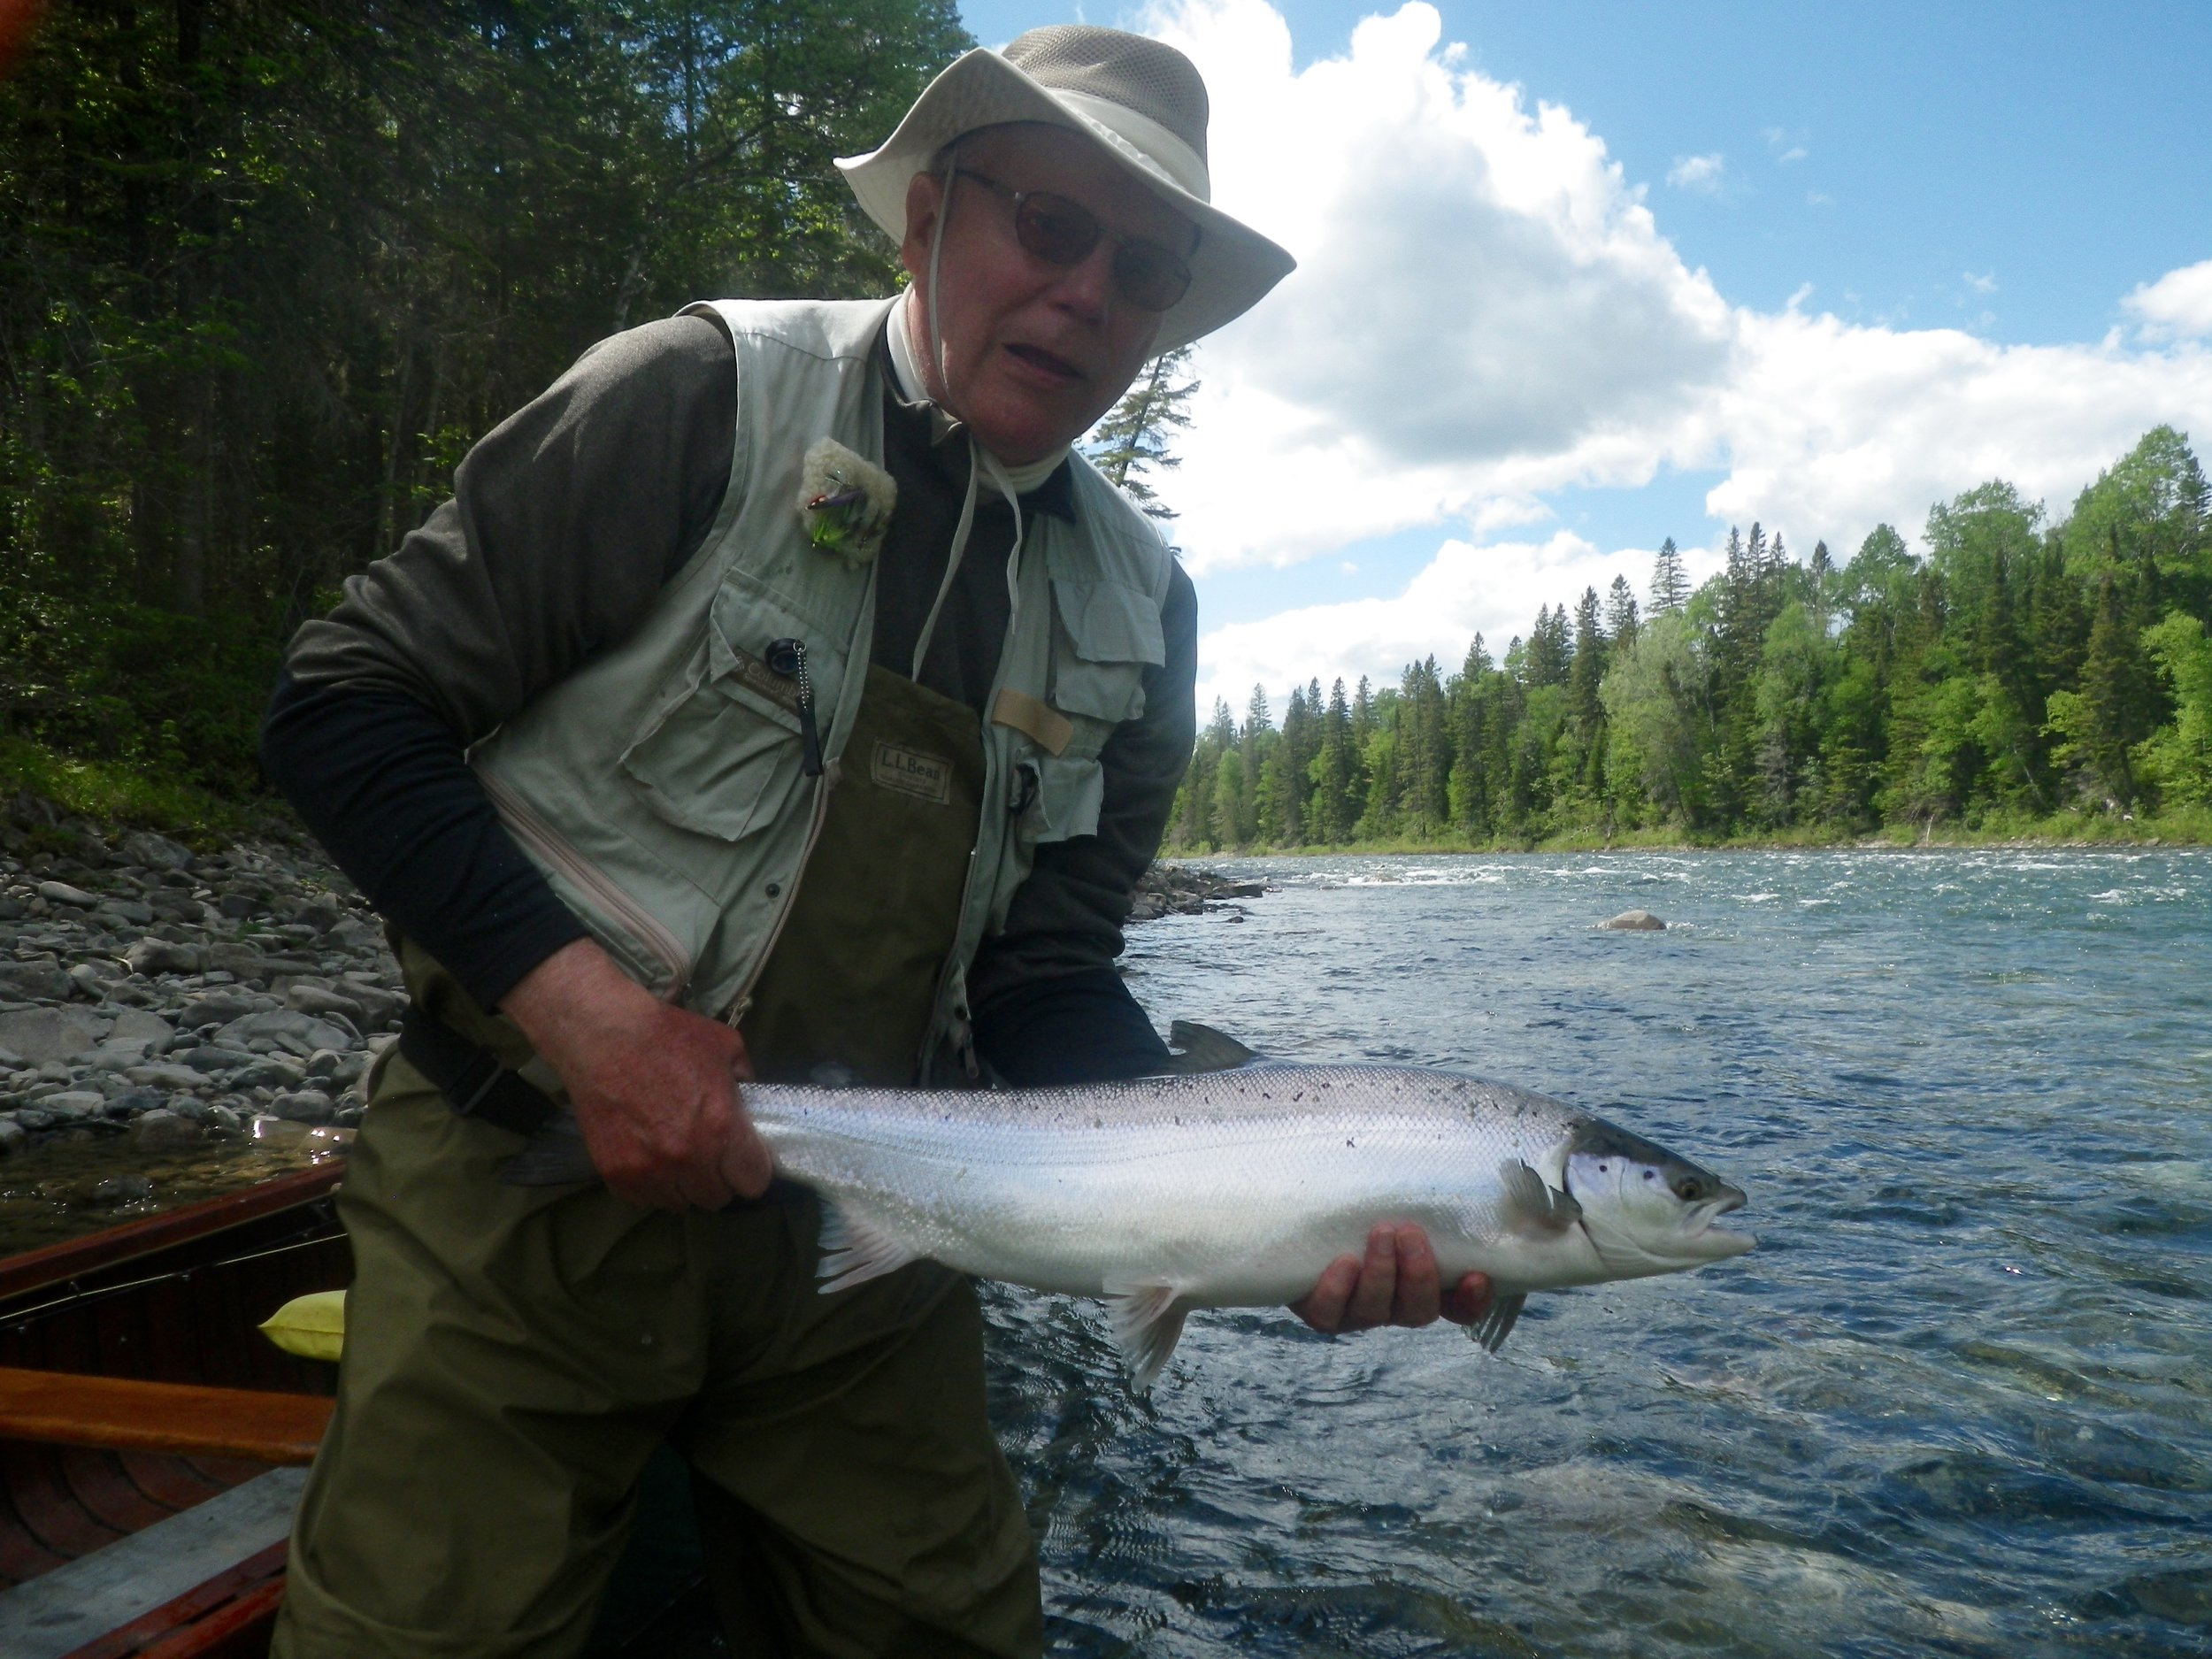 Long time Camp Bonaventure guest David Johnston with a nice fresh run salmon, congratulations David!